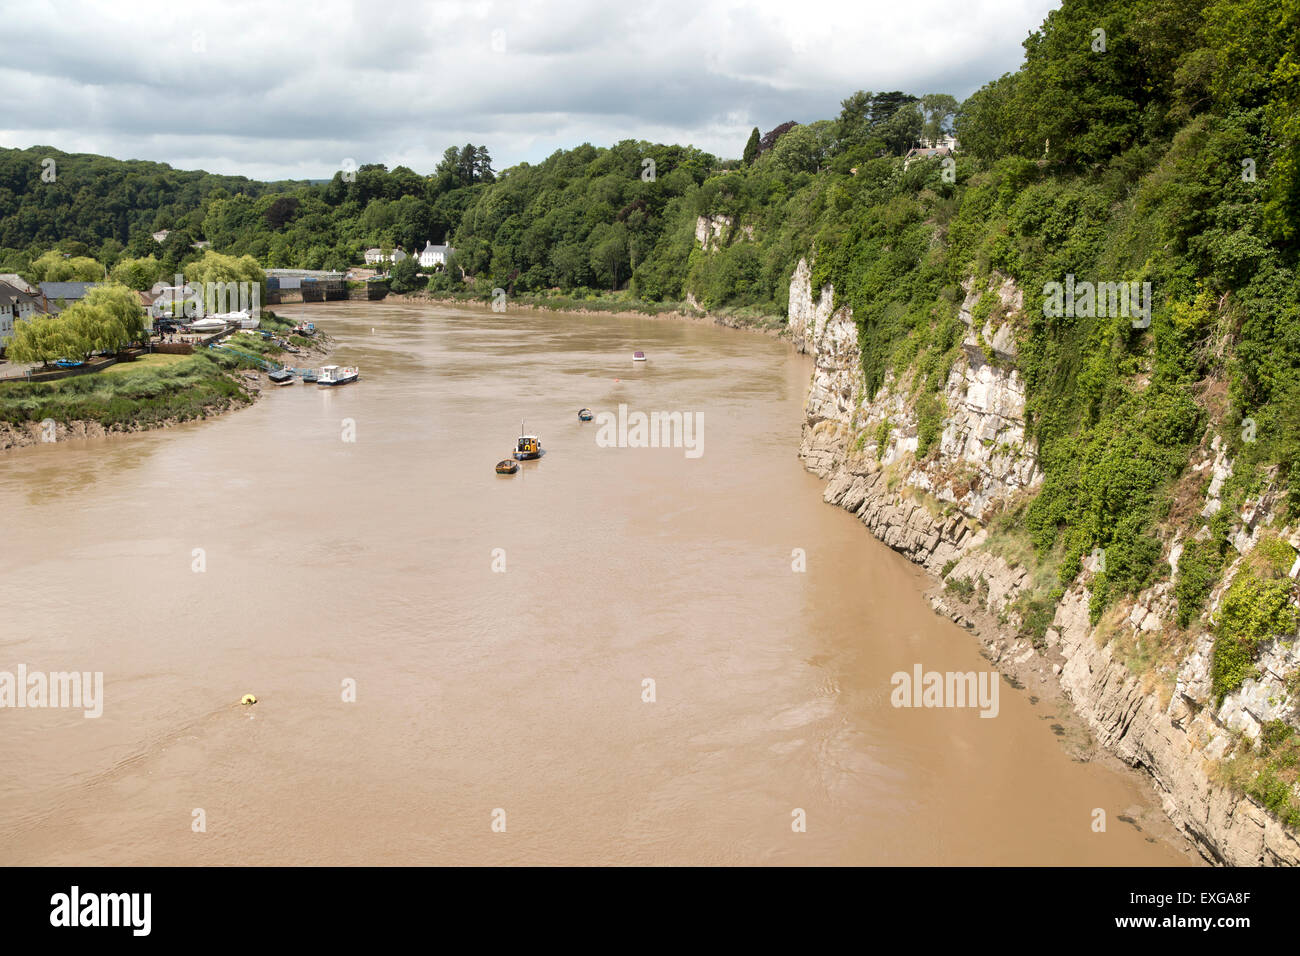 Cliff and meander loop of River Wye at Chepstow, Monmouthshire, Wales, UK - Stock Image